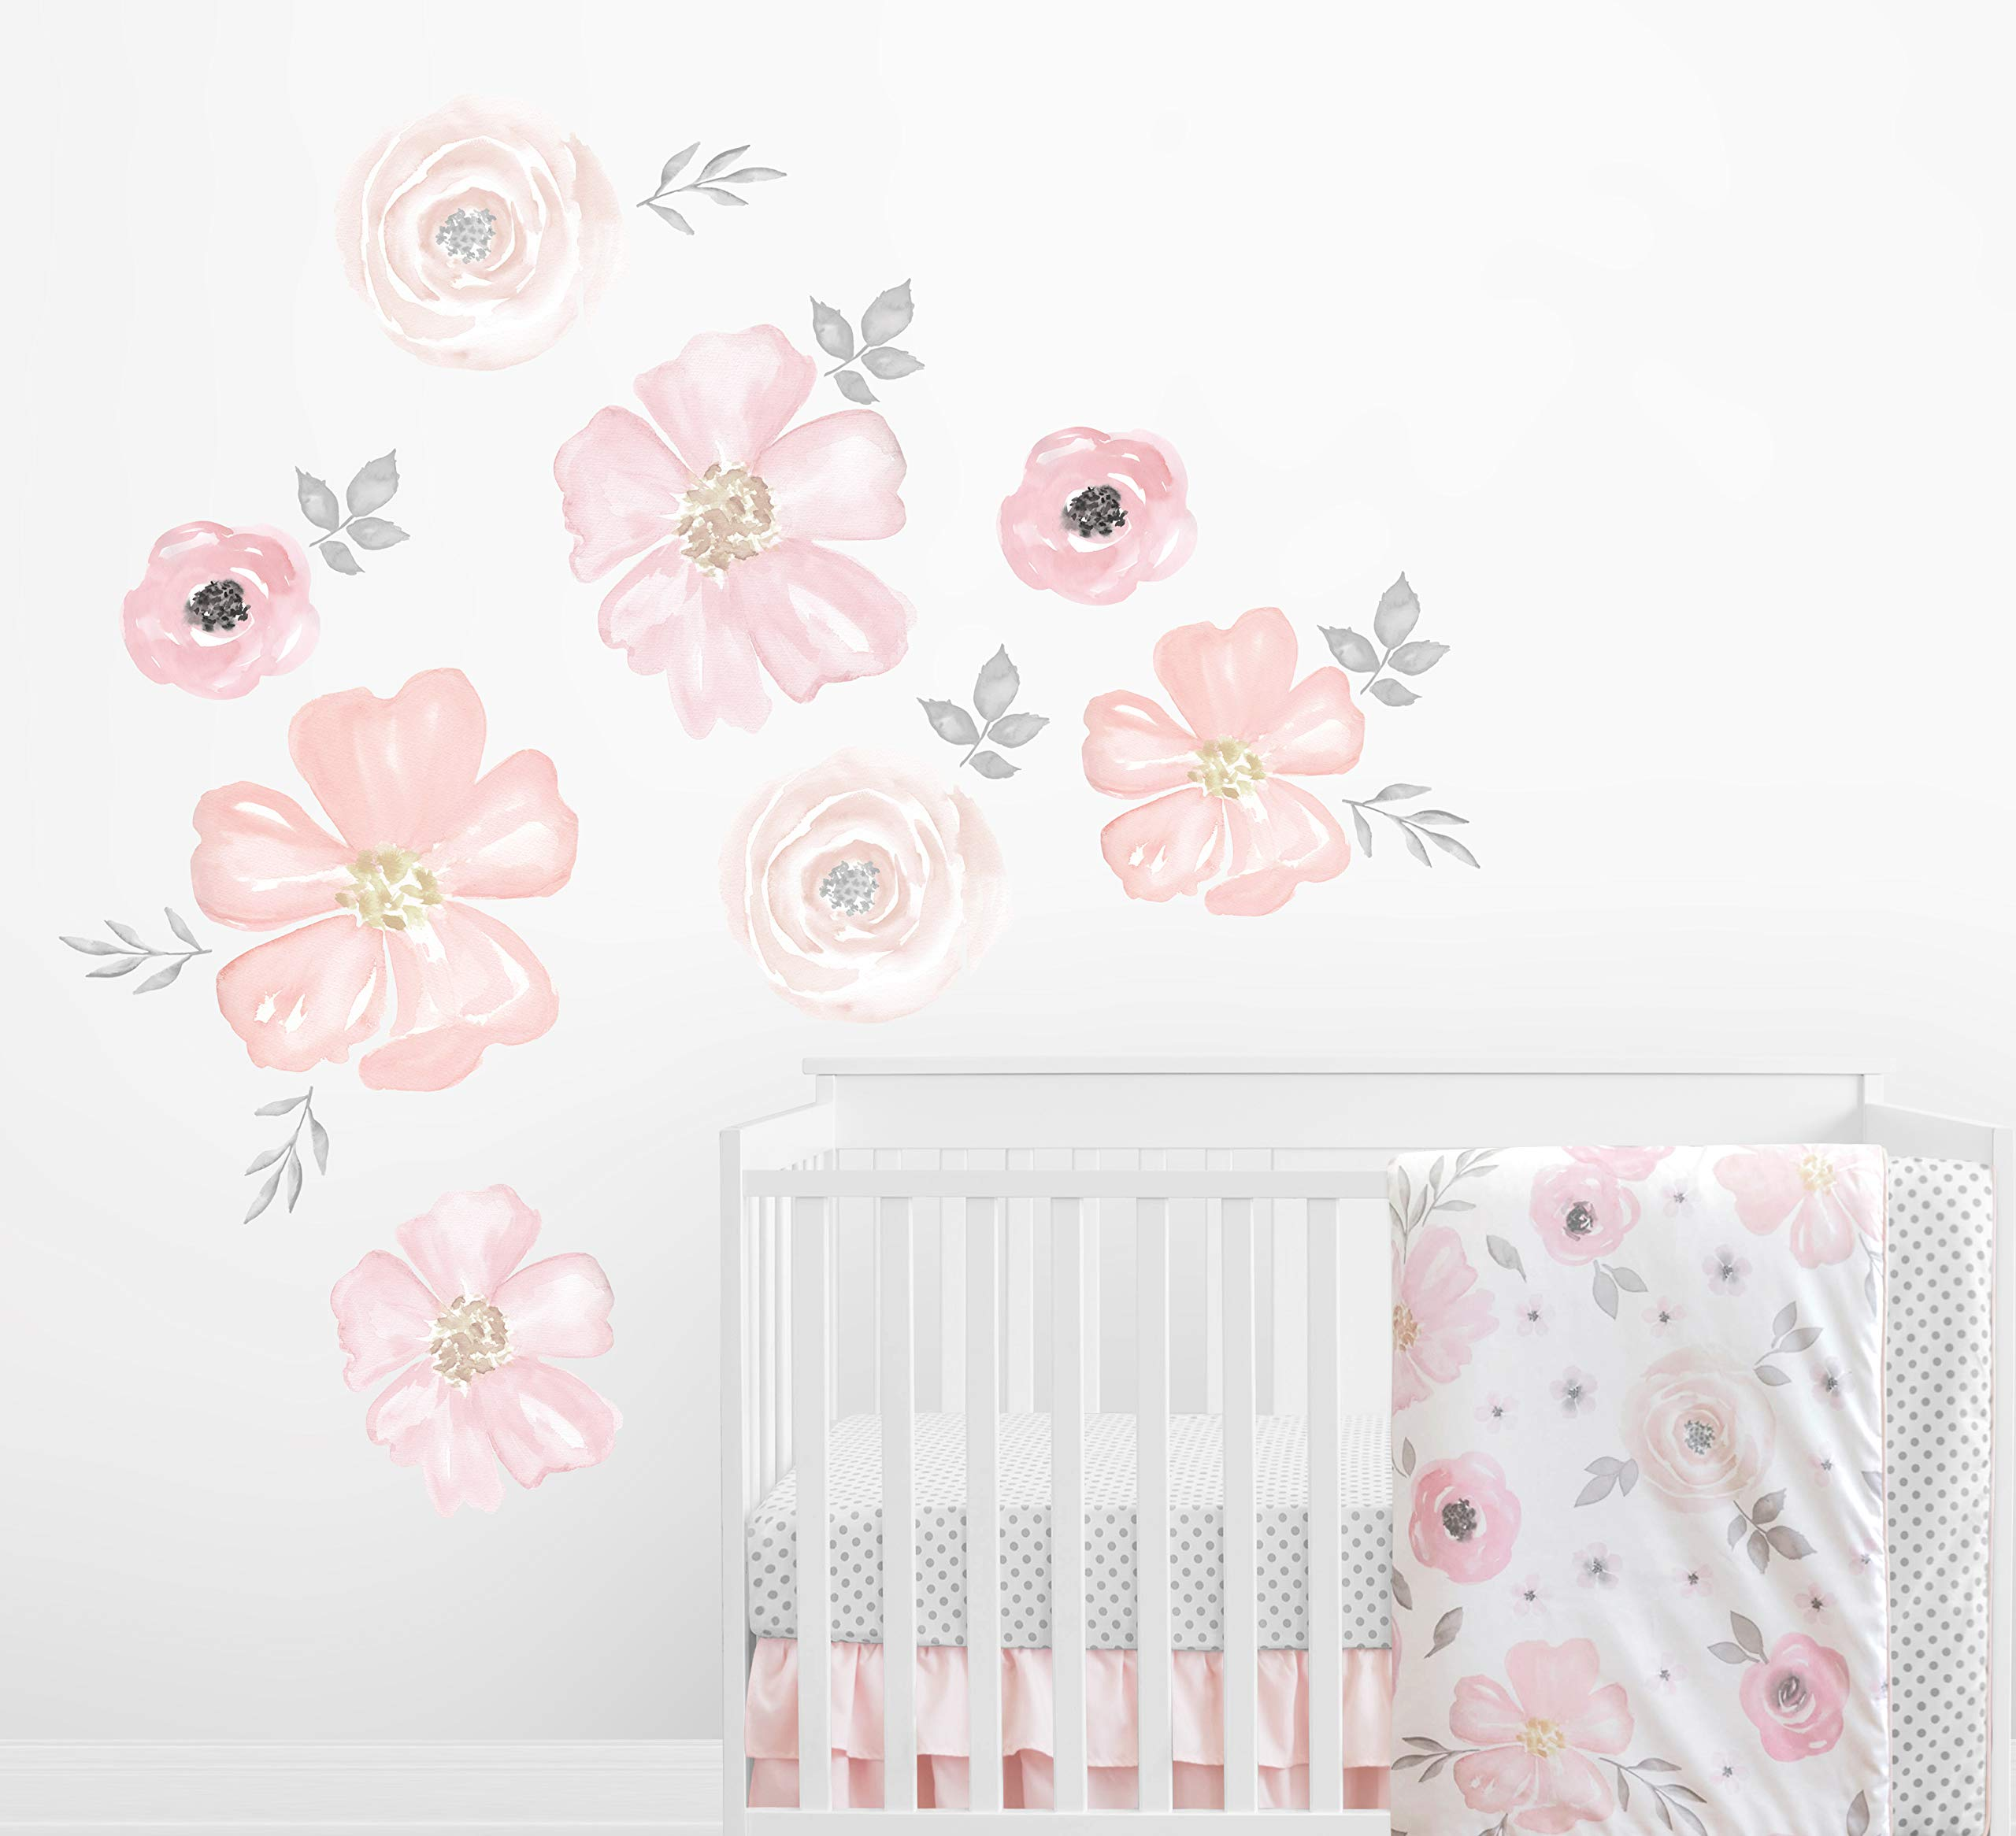 Sweet Jojo Designs Blush Pink, Grey and White Large Peel and Stick Wall Mural Decal Stickers Art Nursery Decor for Watercolor Floral Collection - Set of 2 Sheets by Sweet Jojo Designs